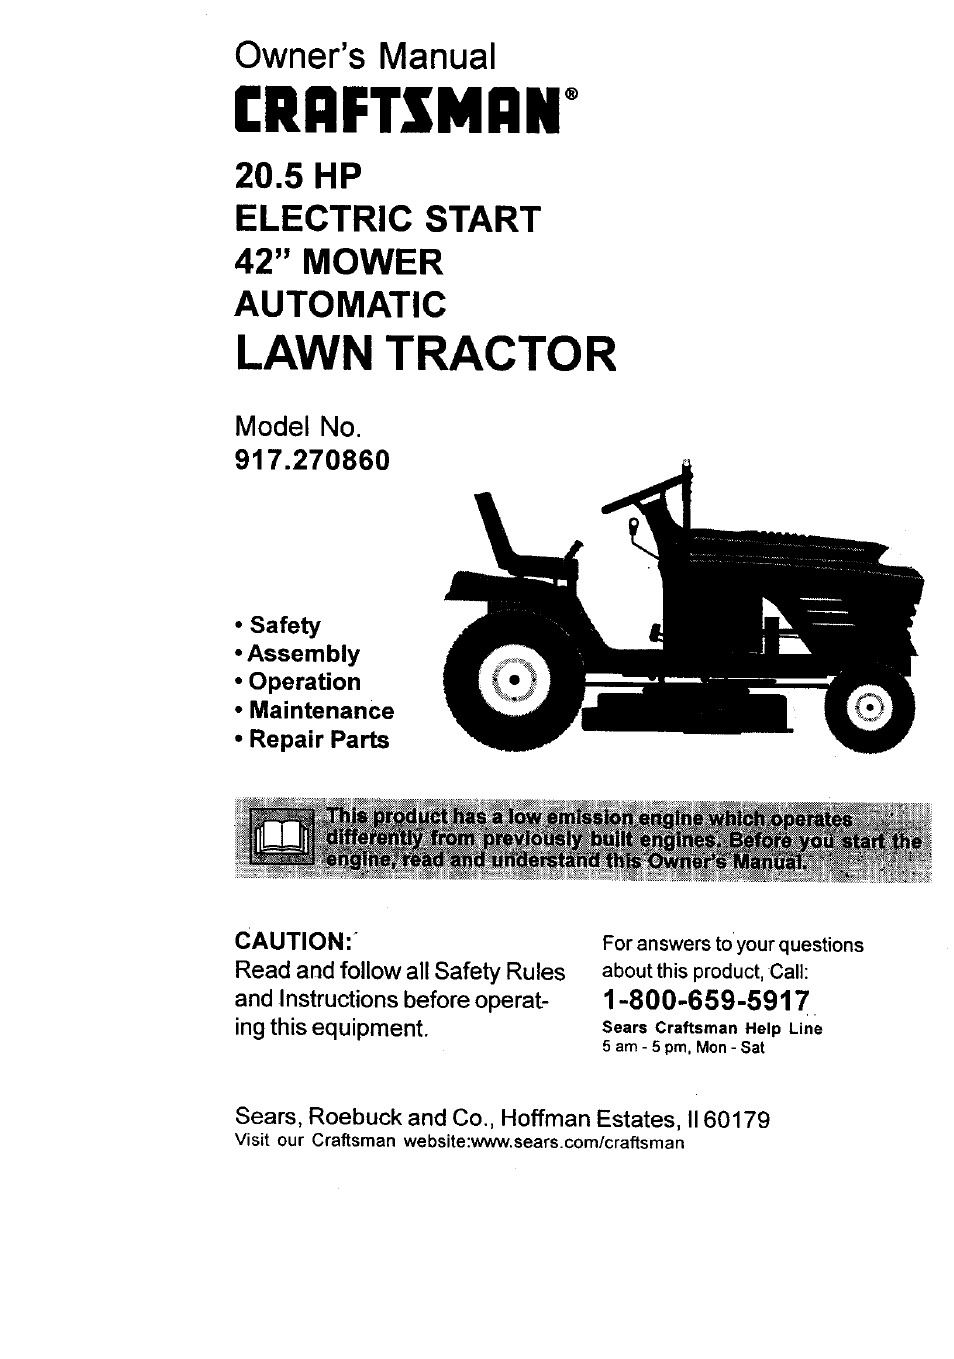 sears craftsman lawn mower repair manual